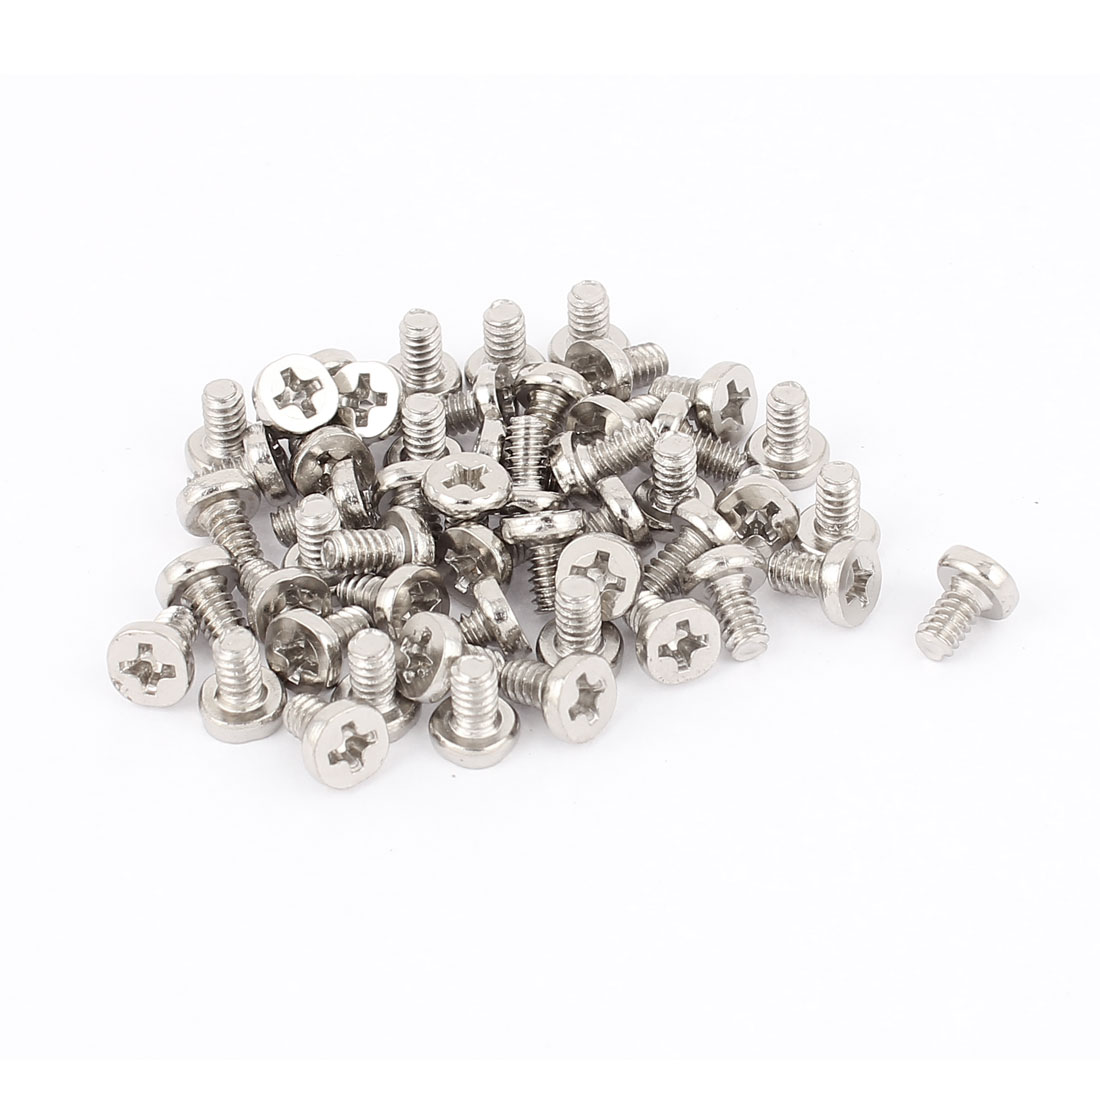 6#-32x6 Nickel Plated Countersunk Phillips Flat Head Screws Silver Tone 50Pcs